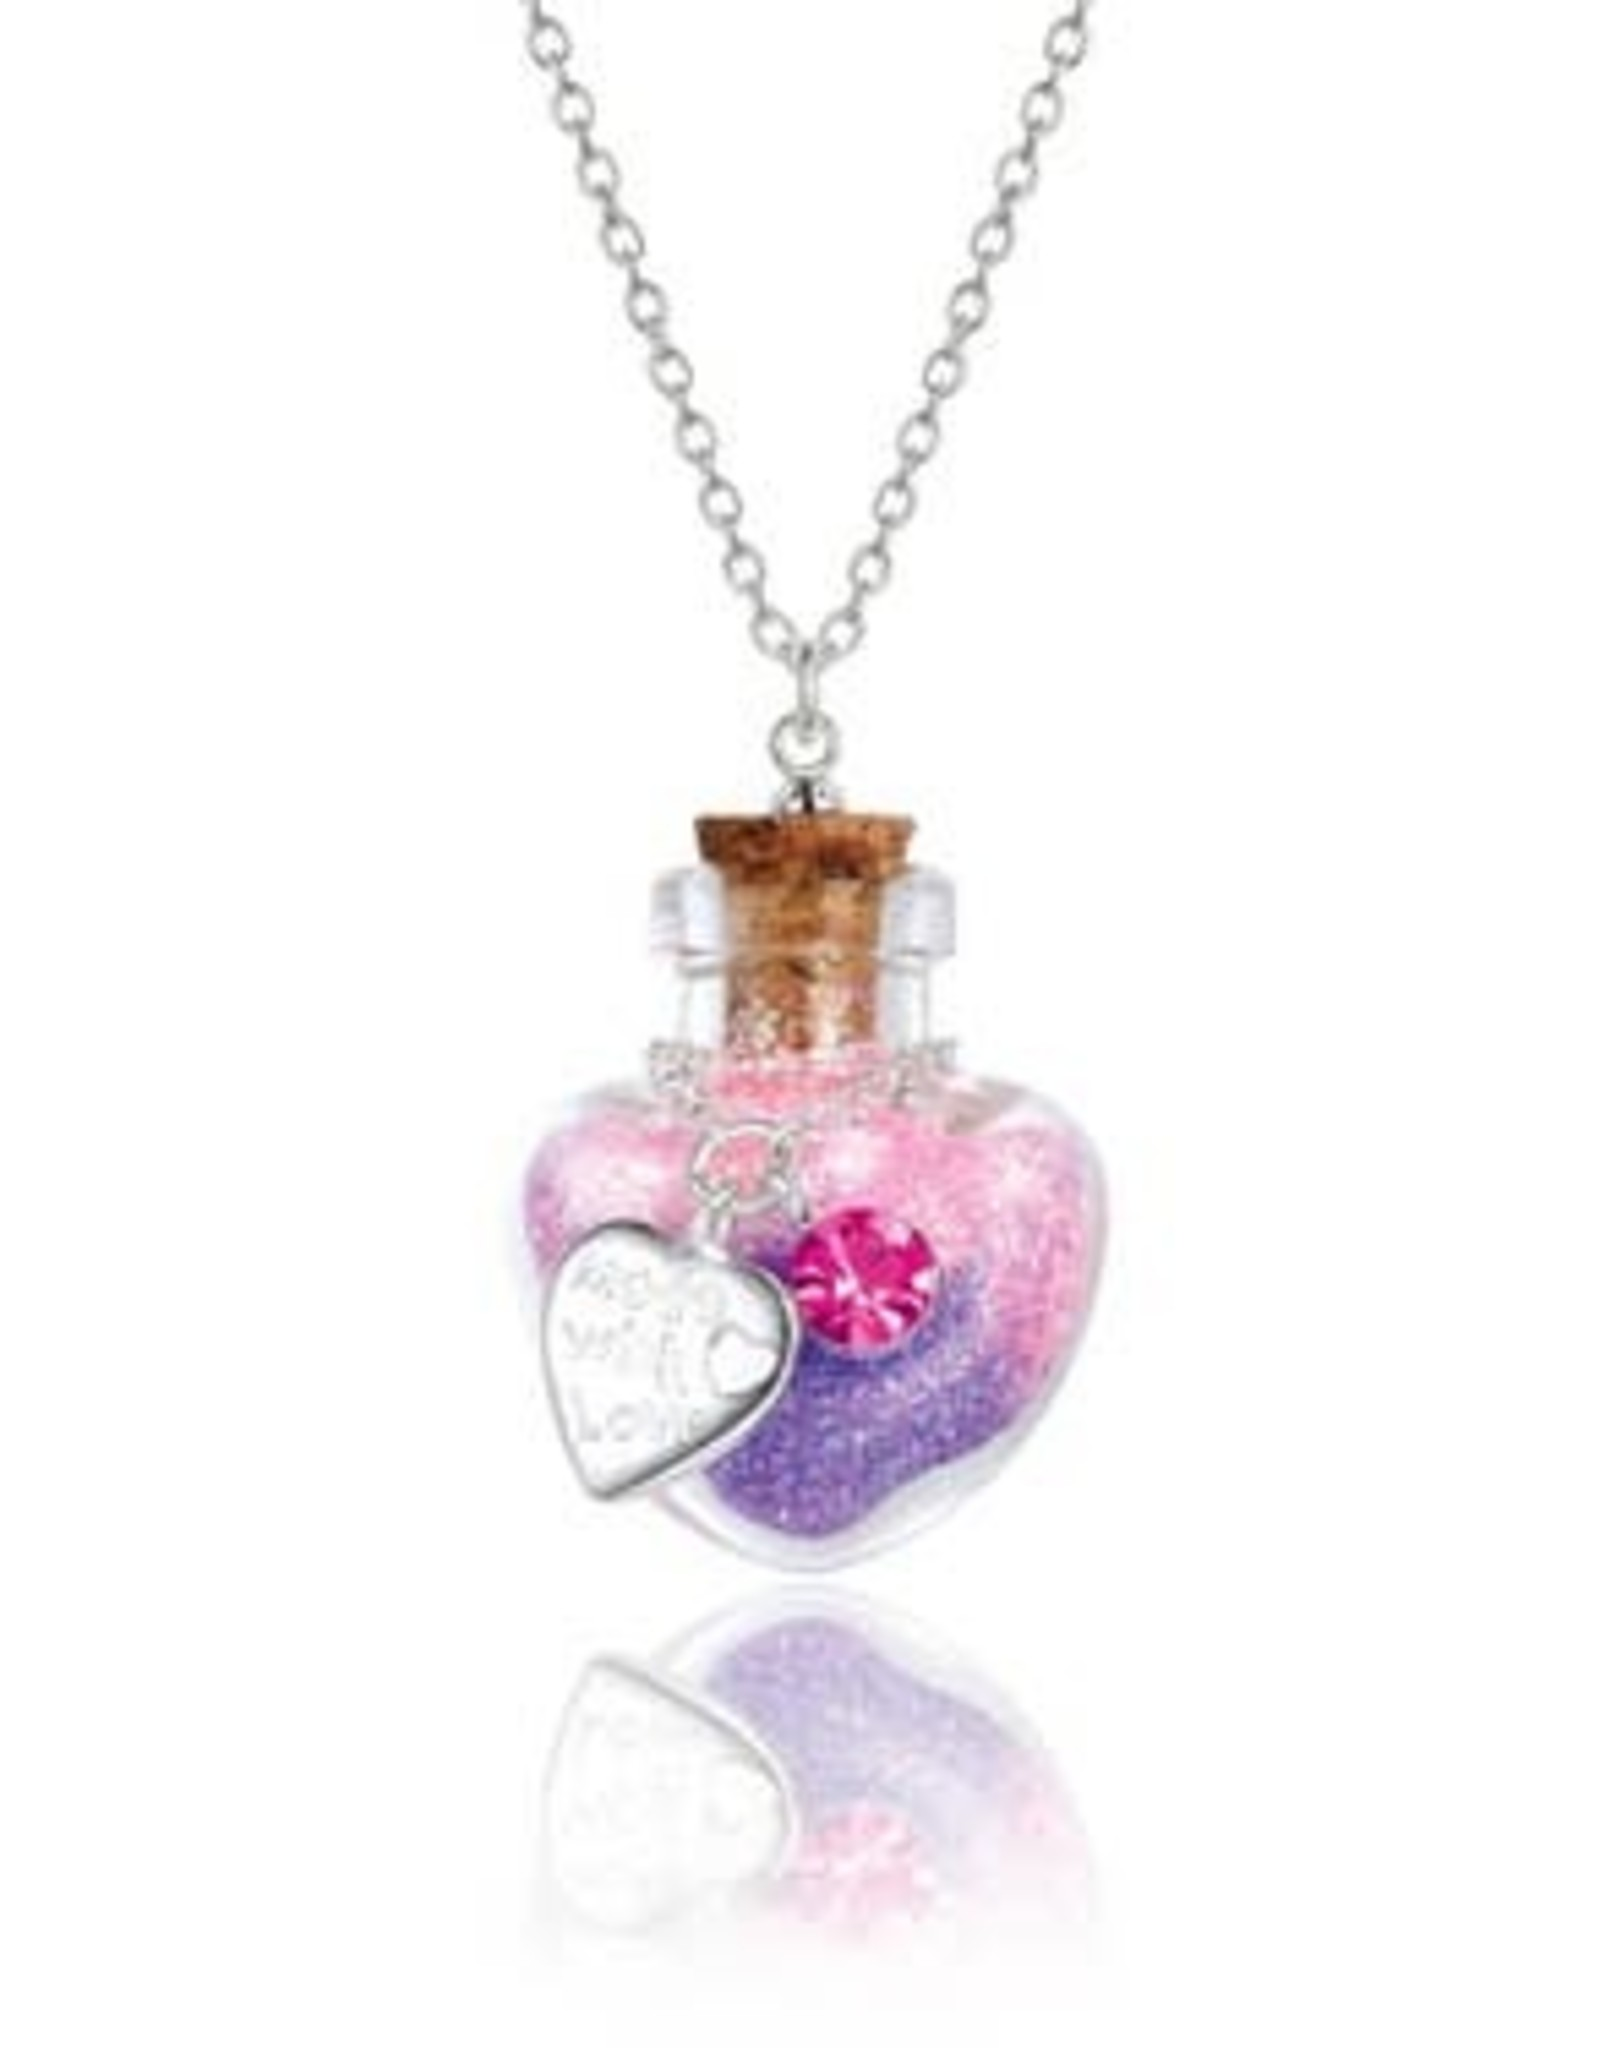 Girl Nation Magic in the bottle necklace - Heart